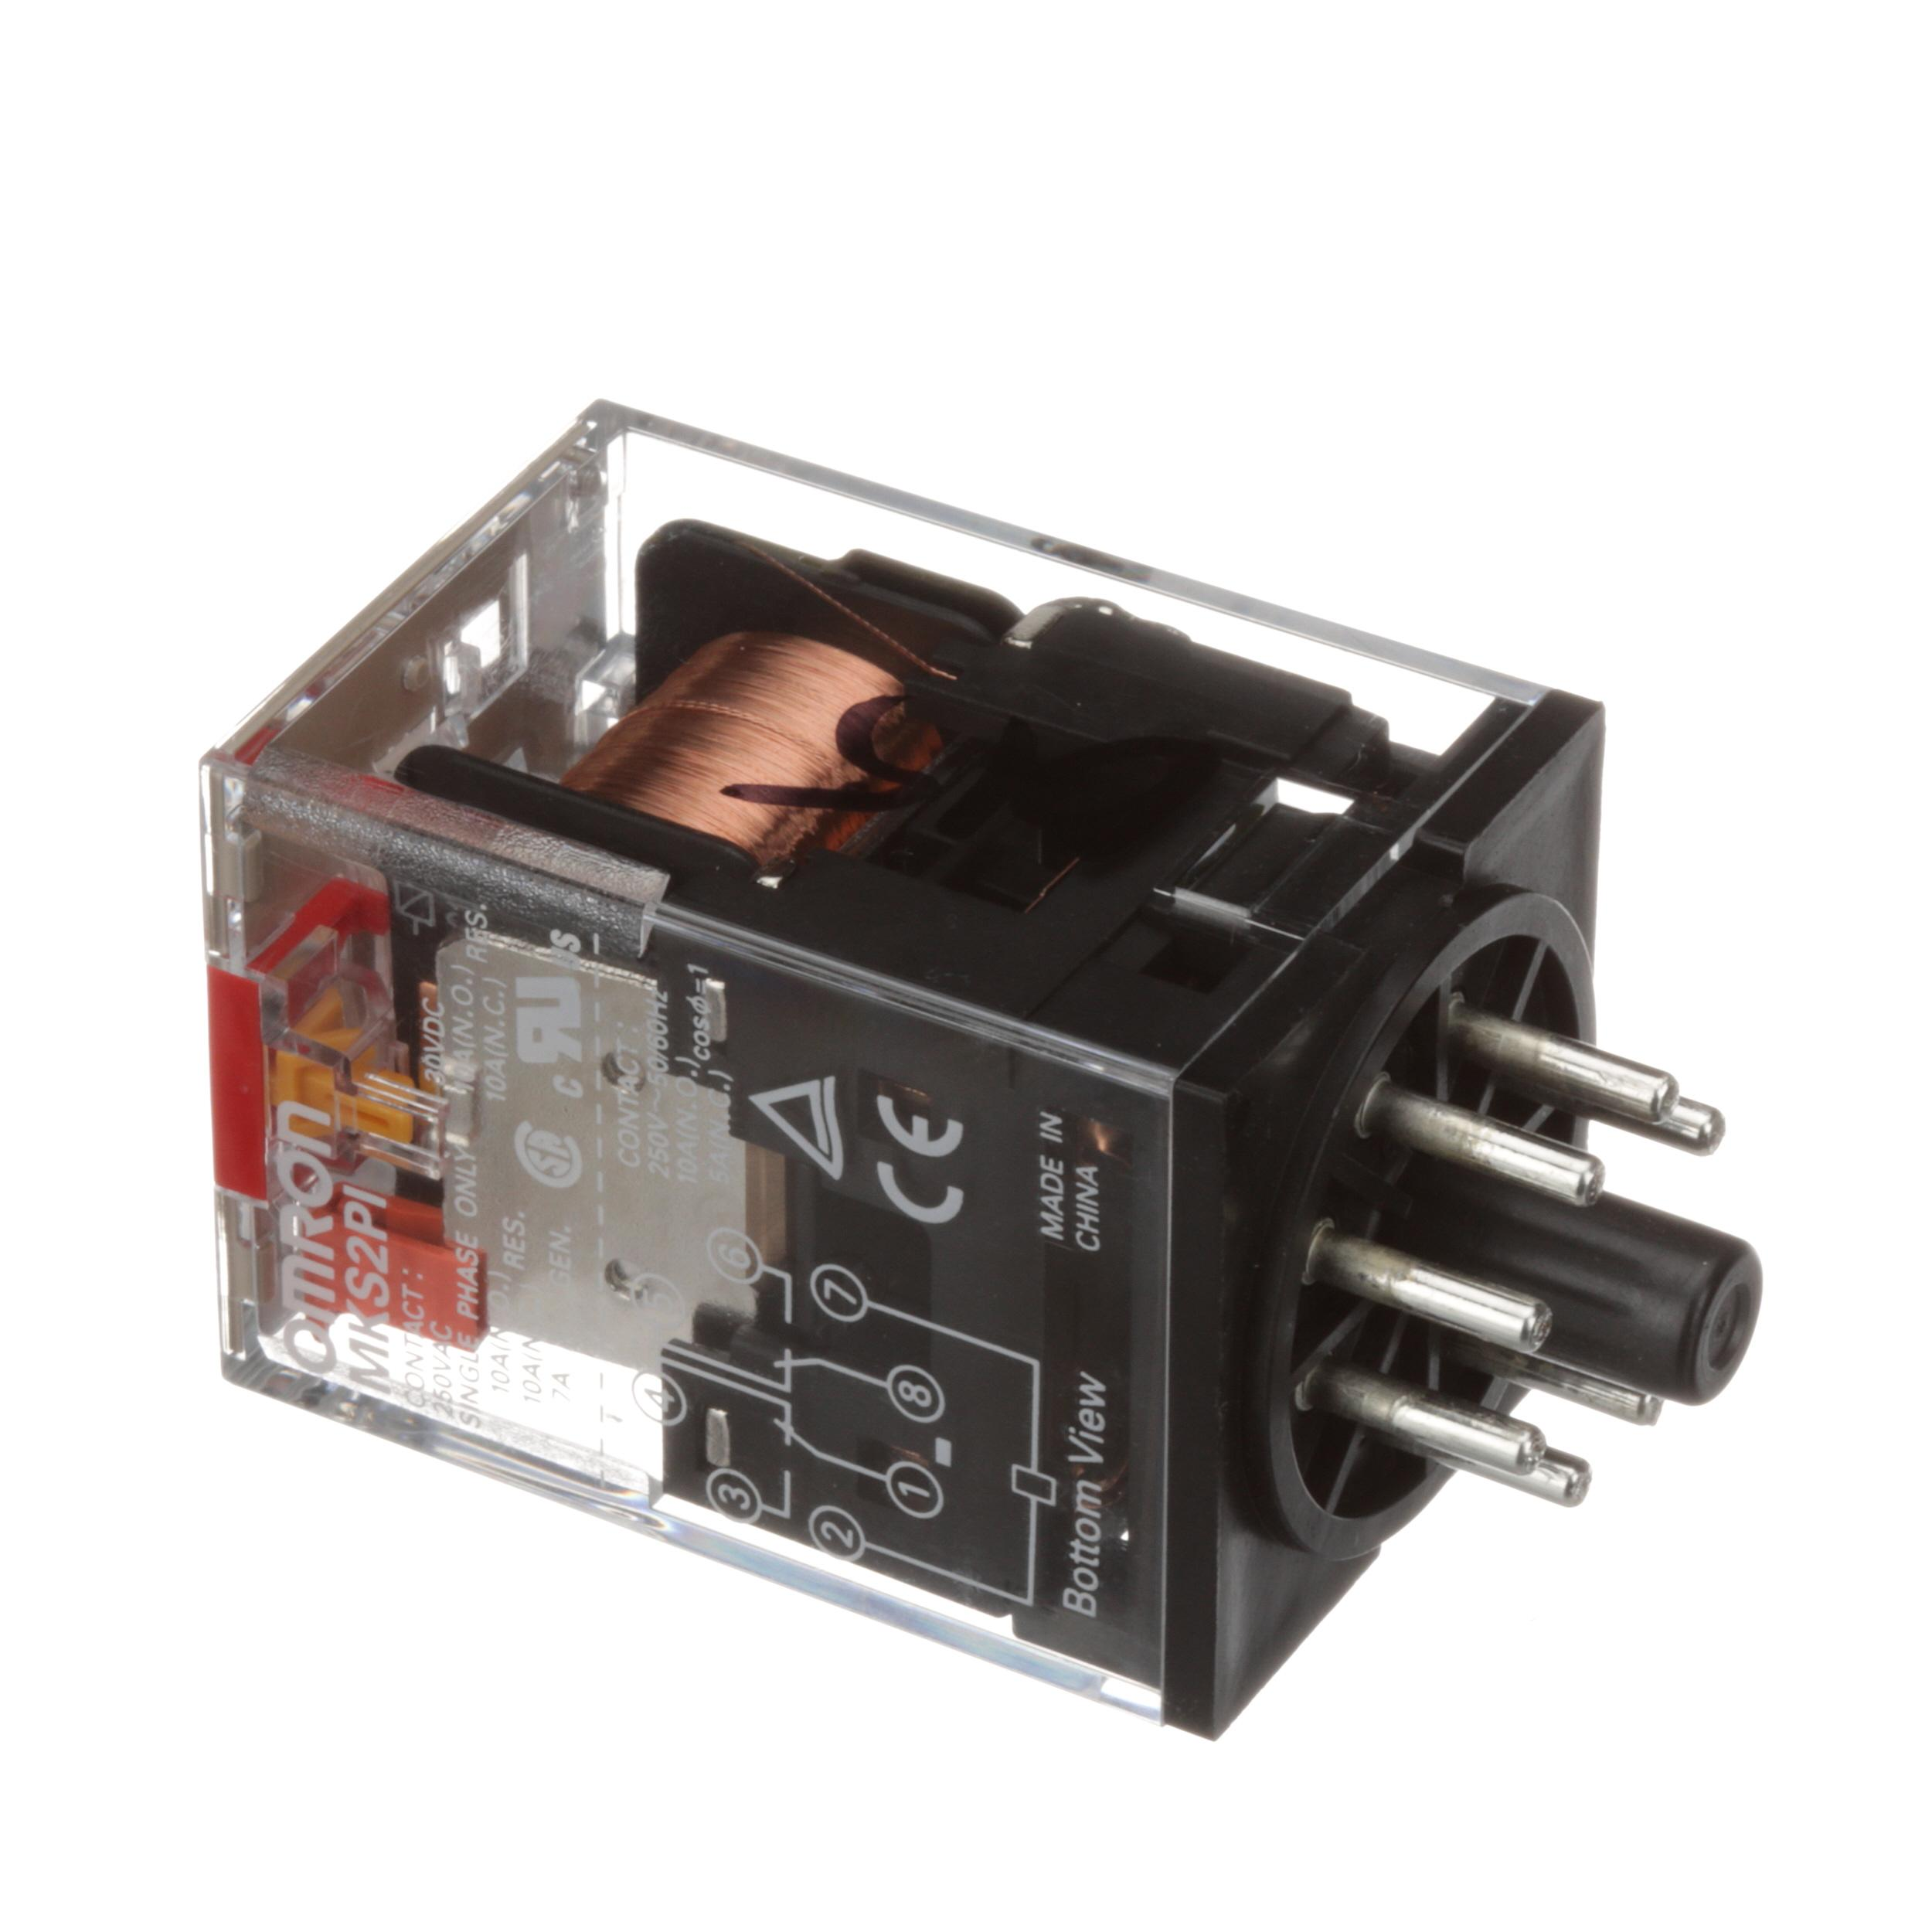 Doyon Equipment Omron Relay 8 Pins 10 Amps 120v 2 Poles For Proofer Electric Oven Of